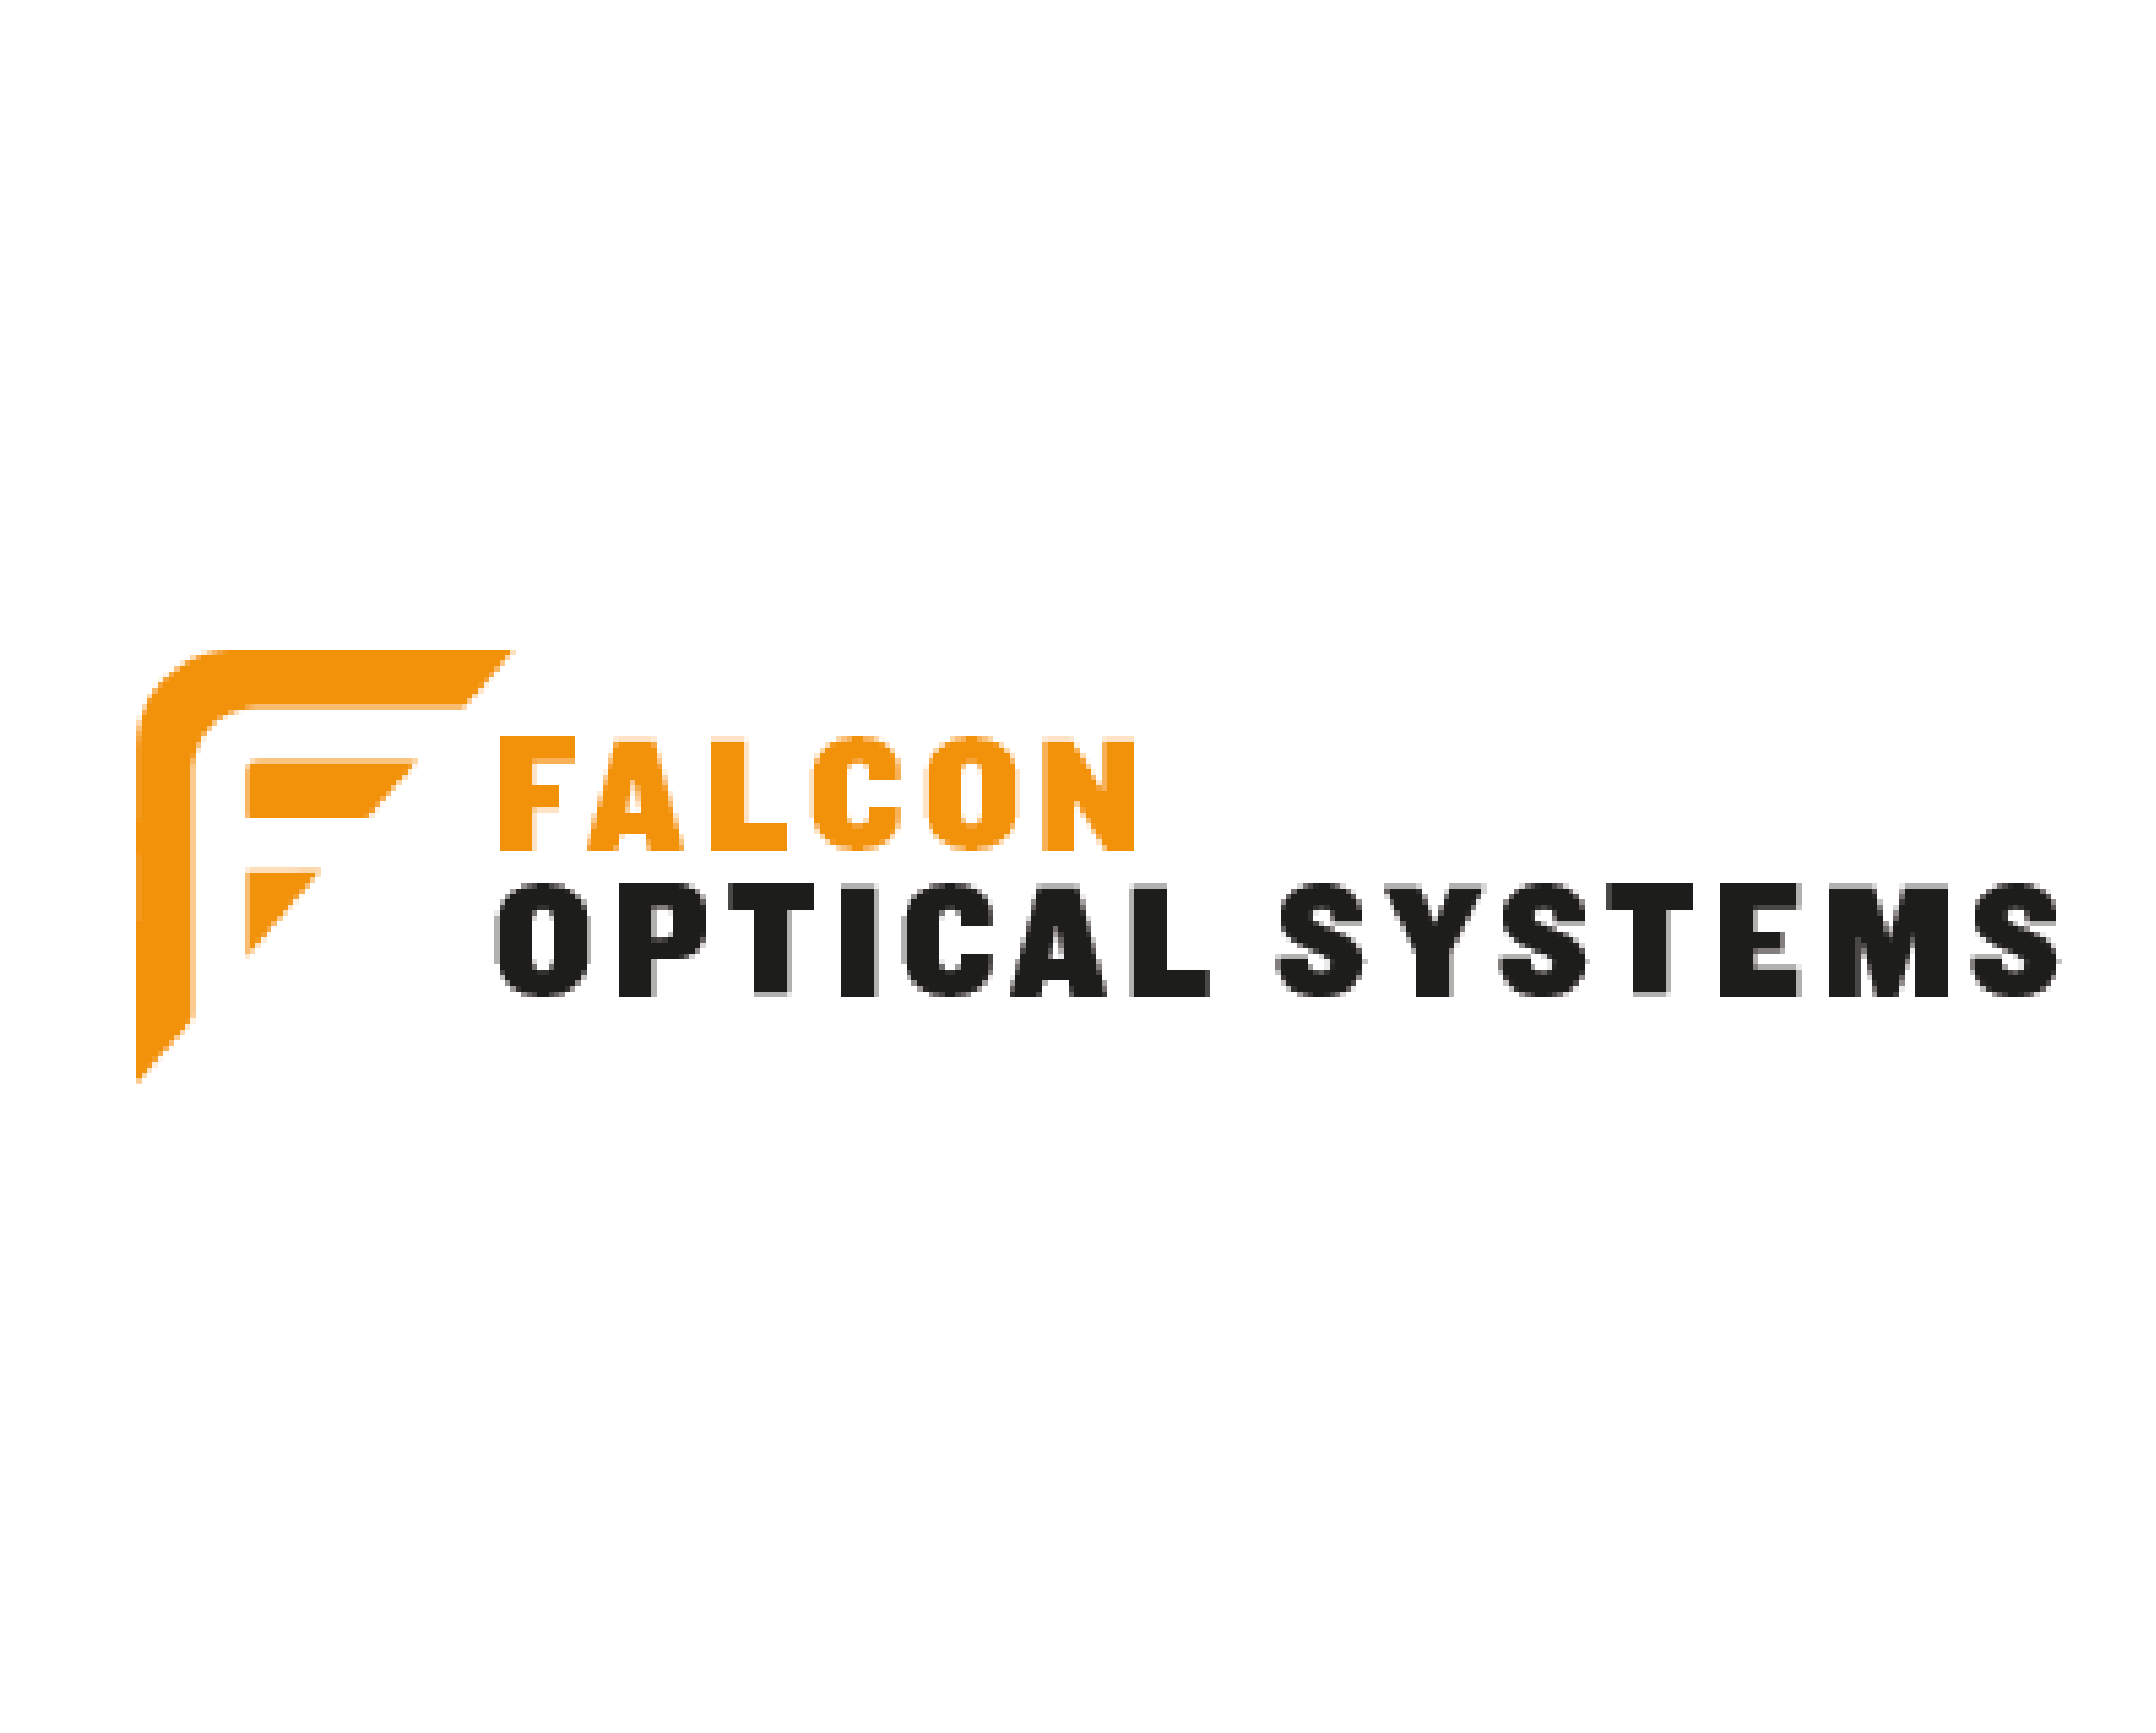 //www.centre-tir.ch/wp-content/uploads/2017/10/logo-flacon-optics-1.png